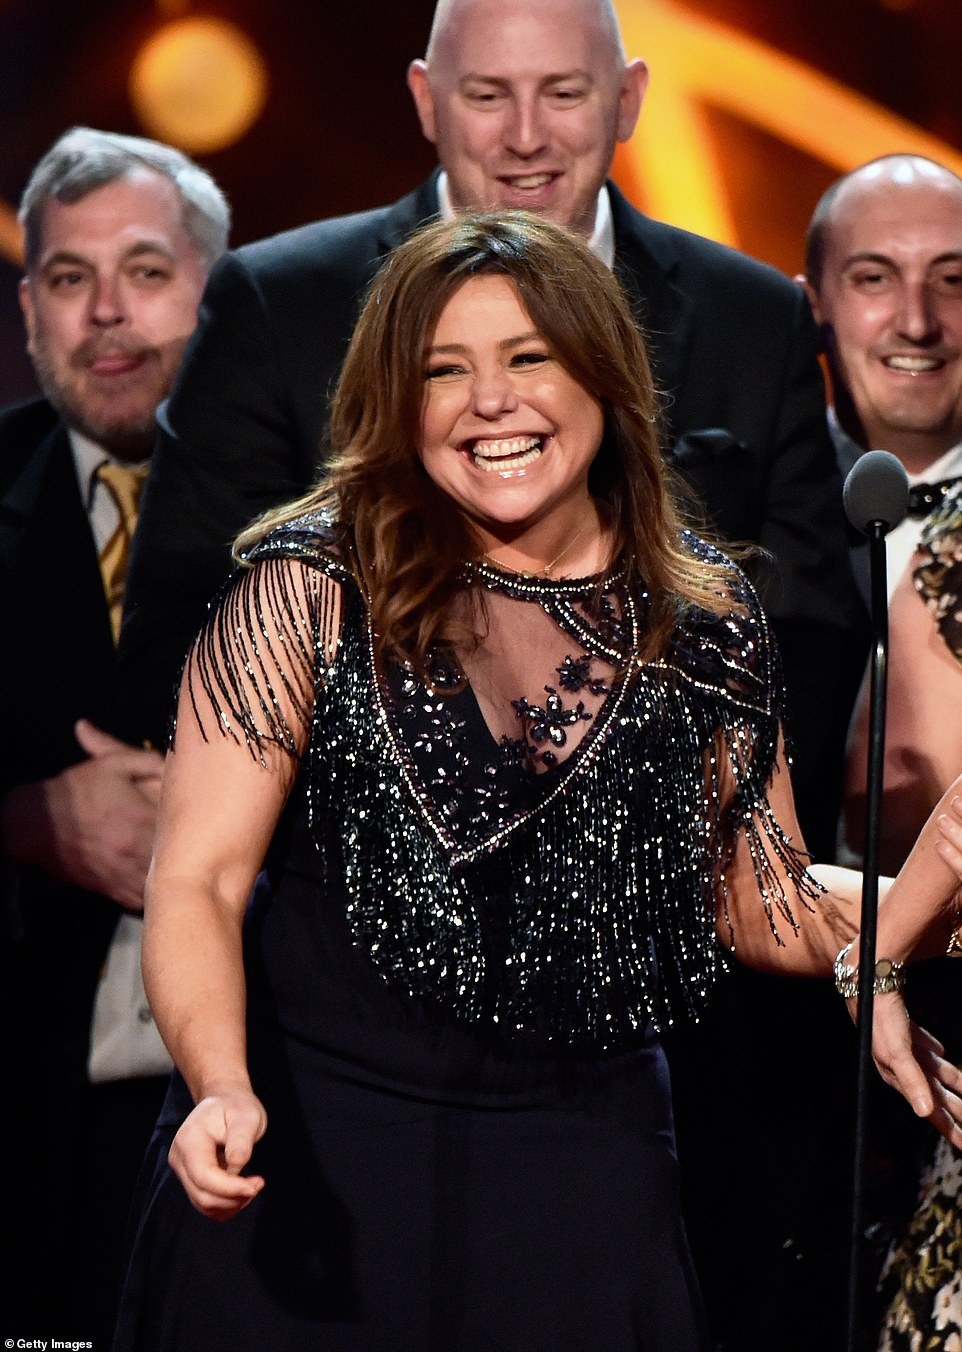 Watch and learn! Rachael Ray accepted the award for Outstanding Informative Talk Show